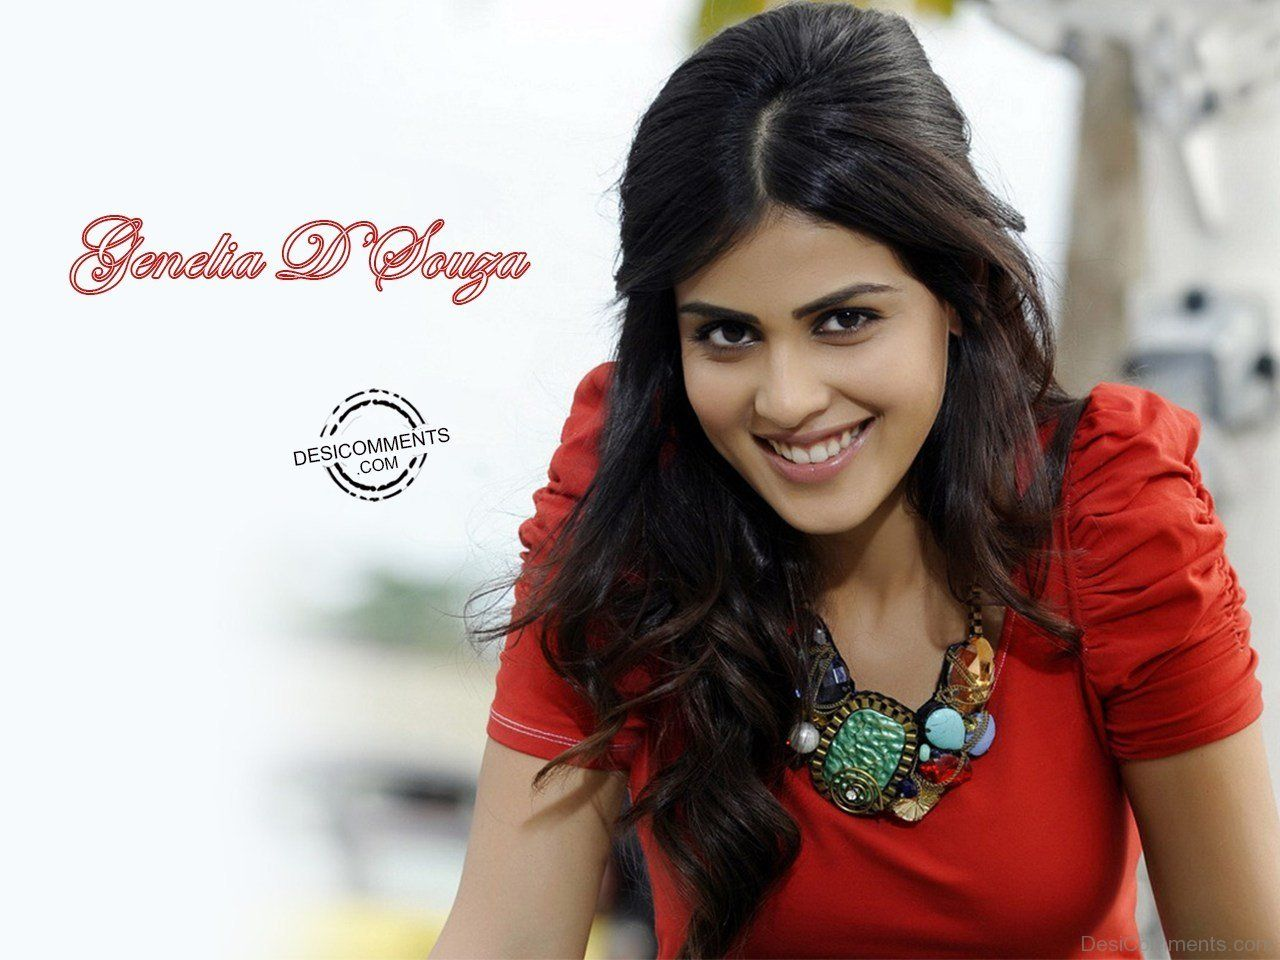 genelia dsouza wallpapers | bollywood wallpapers | free wallpapers